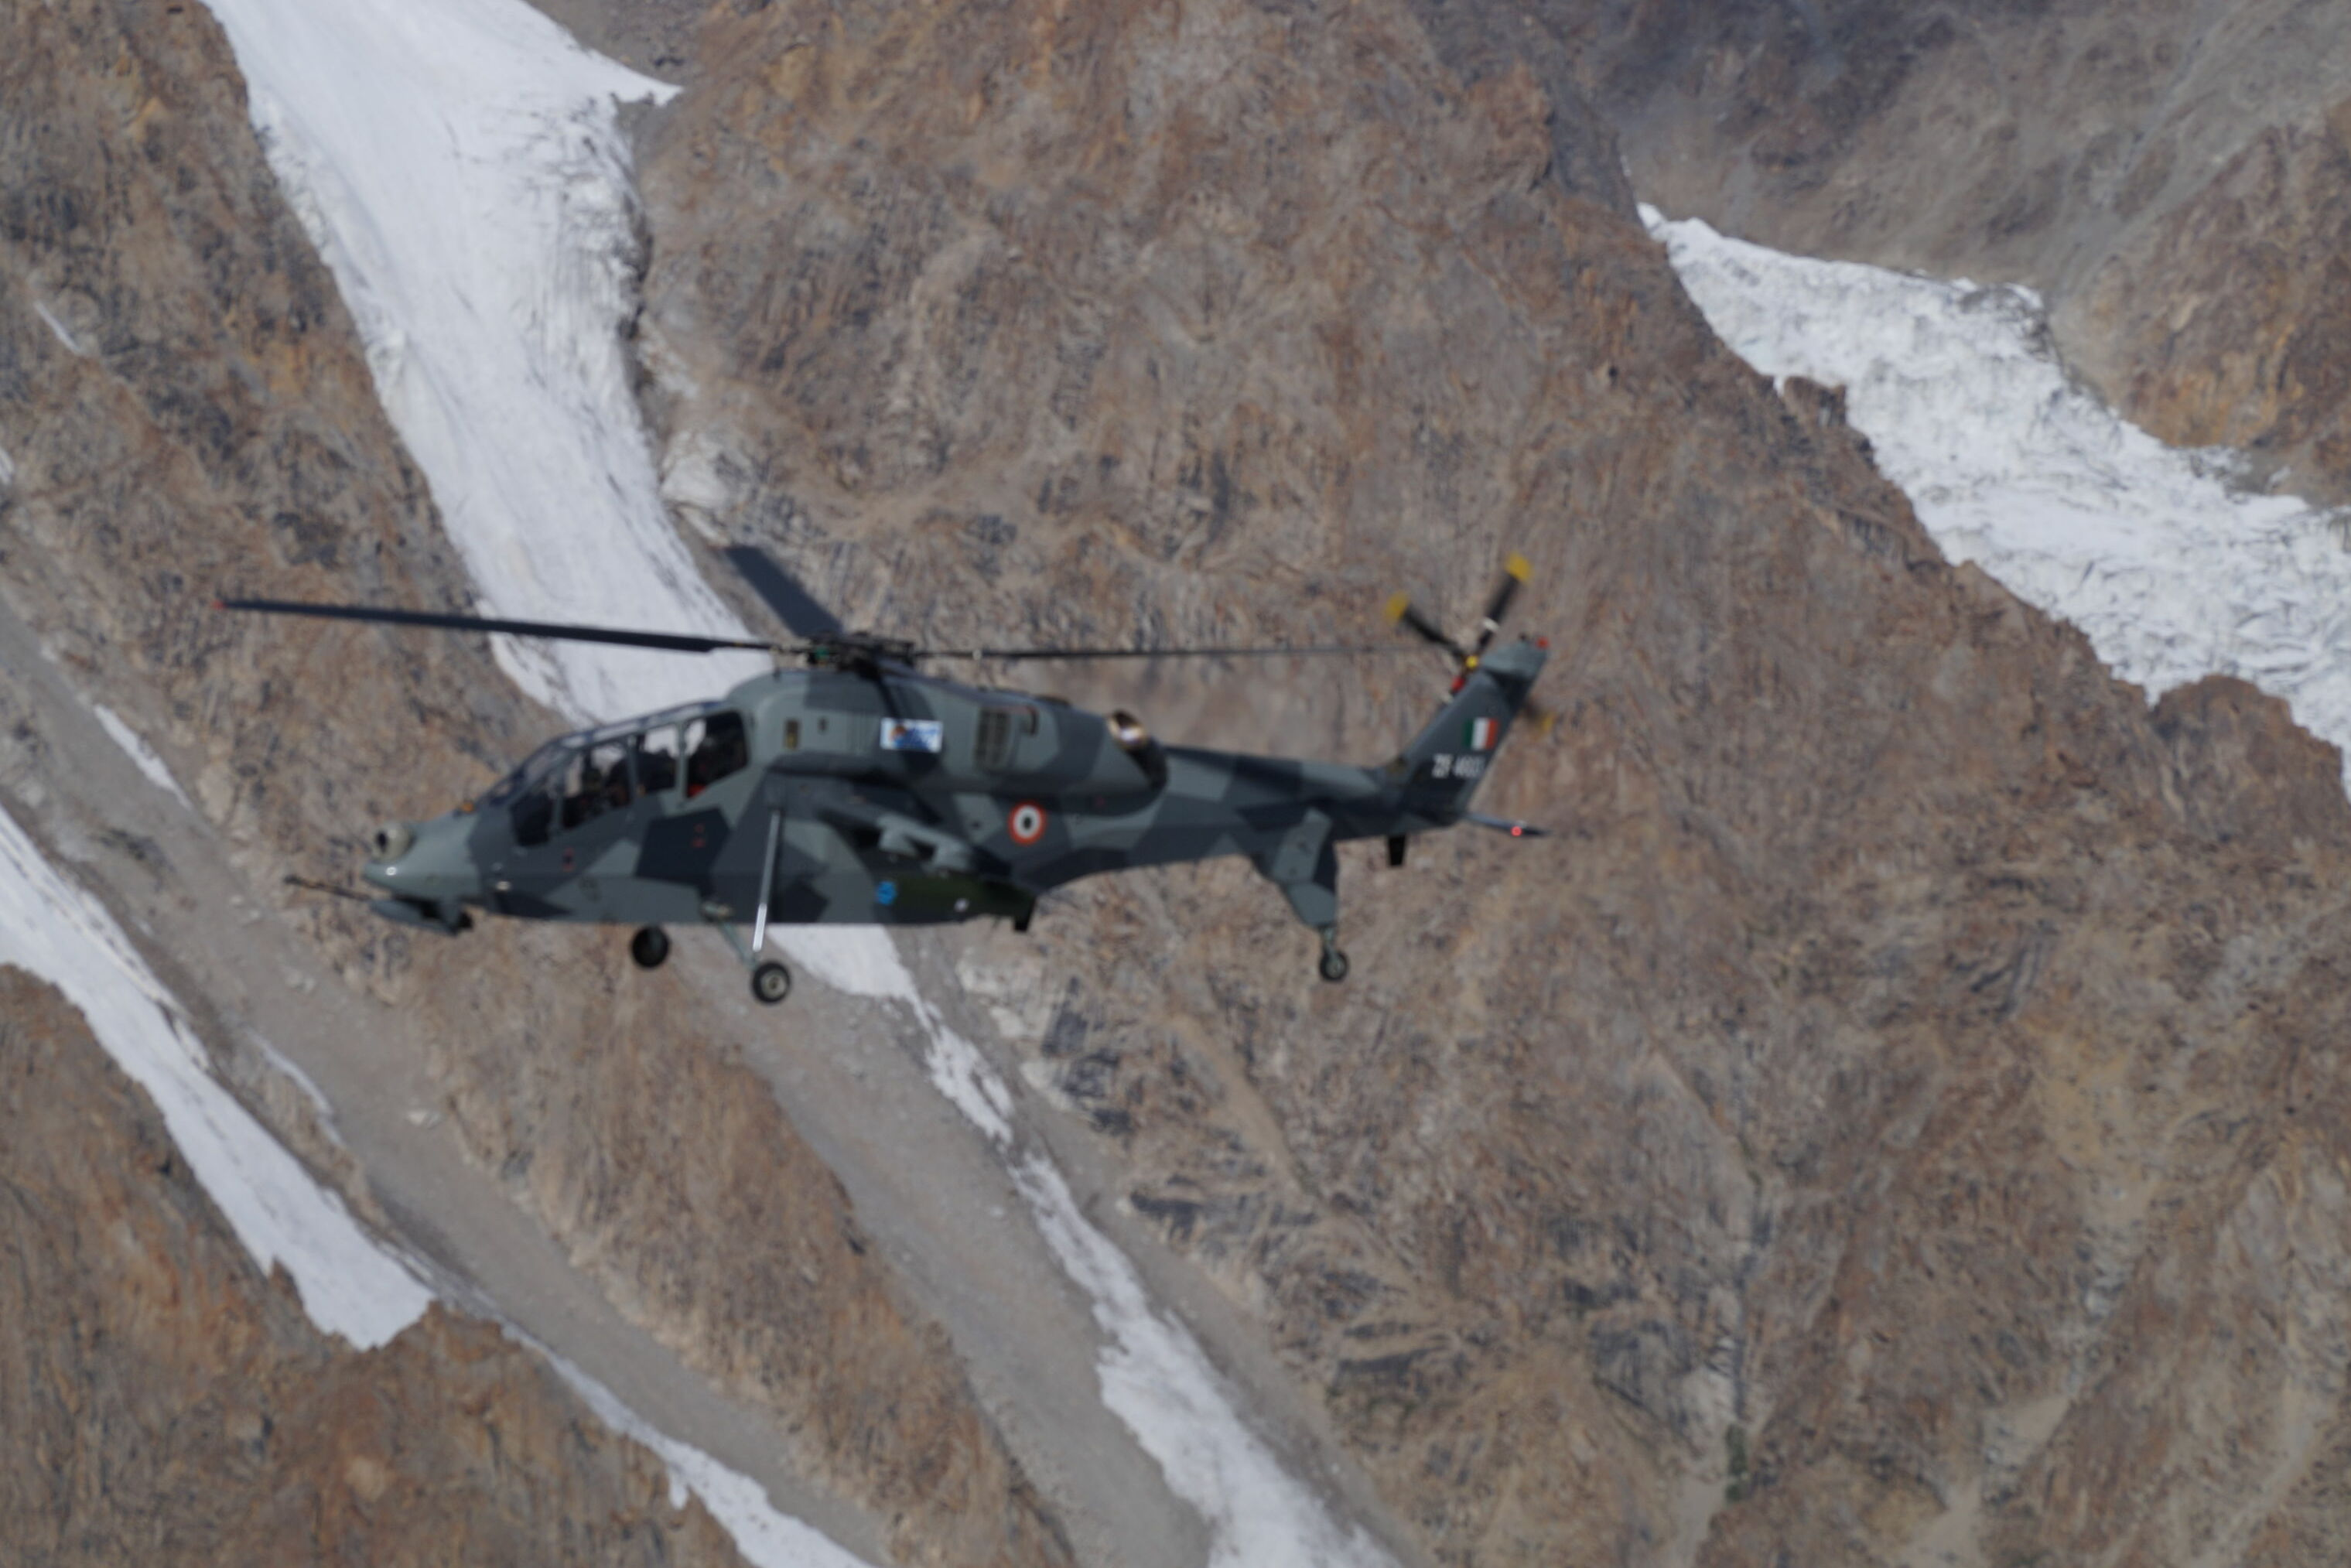 India's Domestically-Produced Armed Helicopter Operating Near Chinese Border